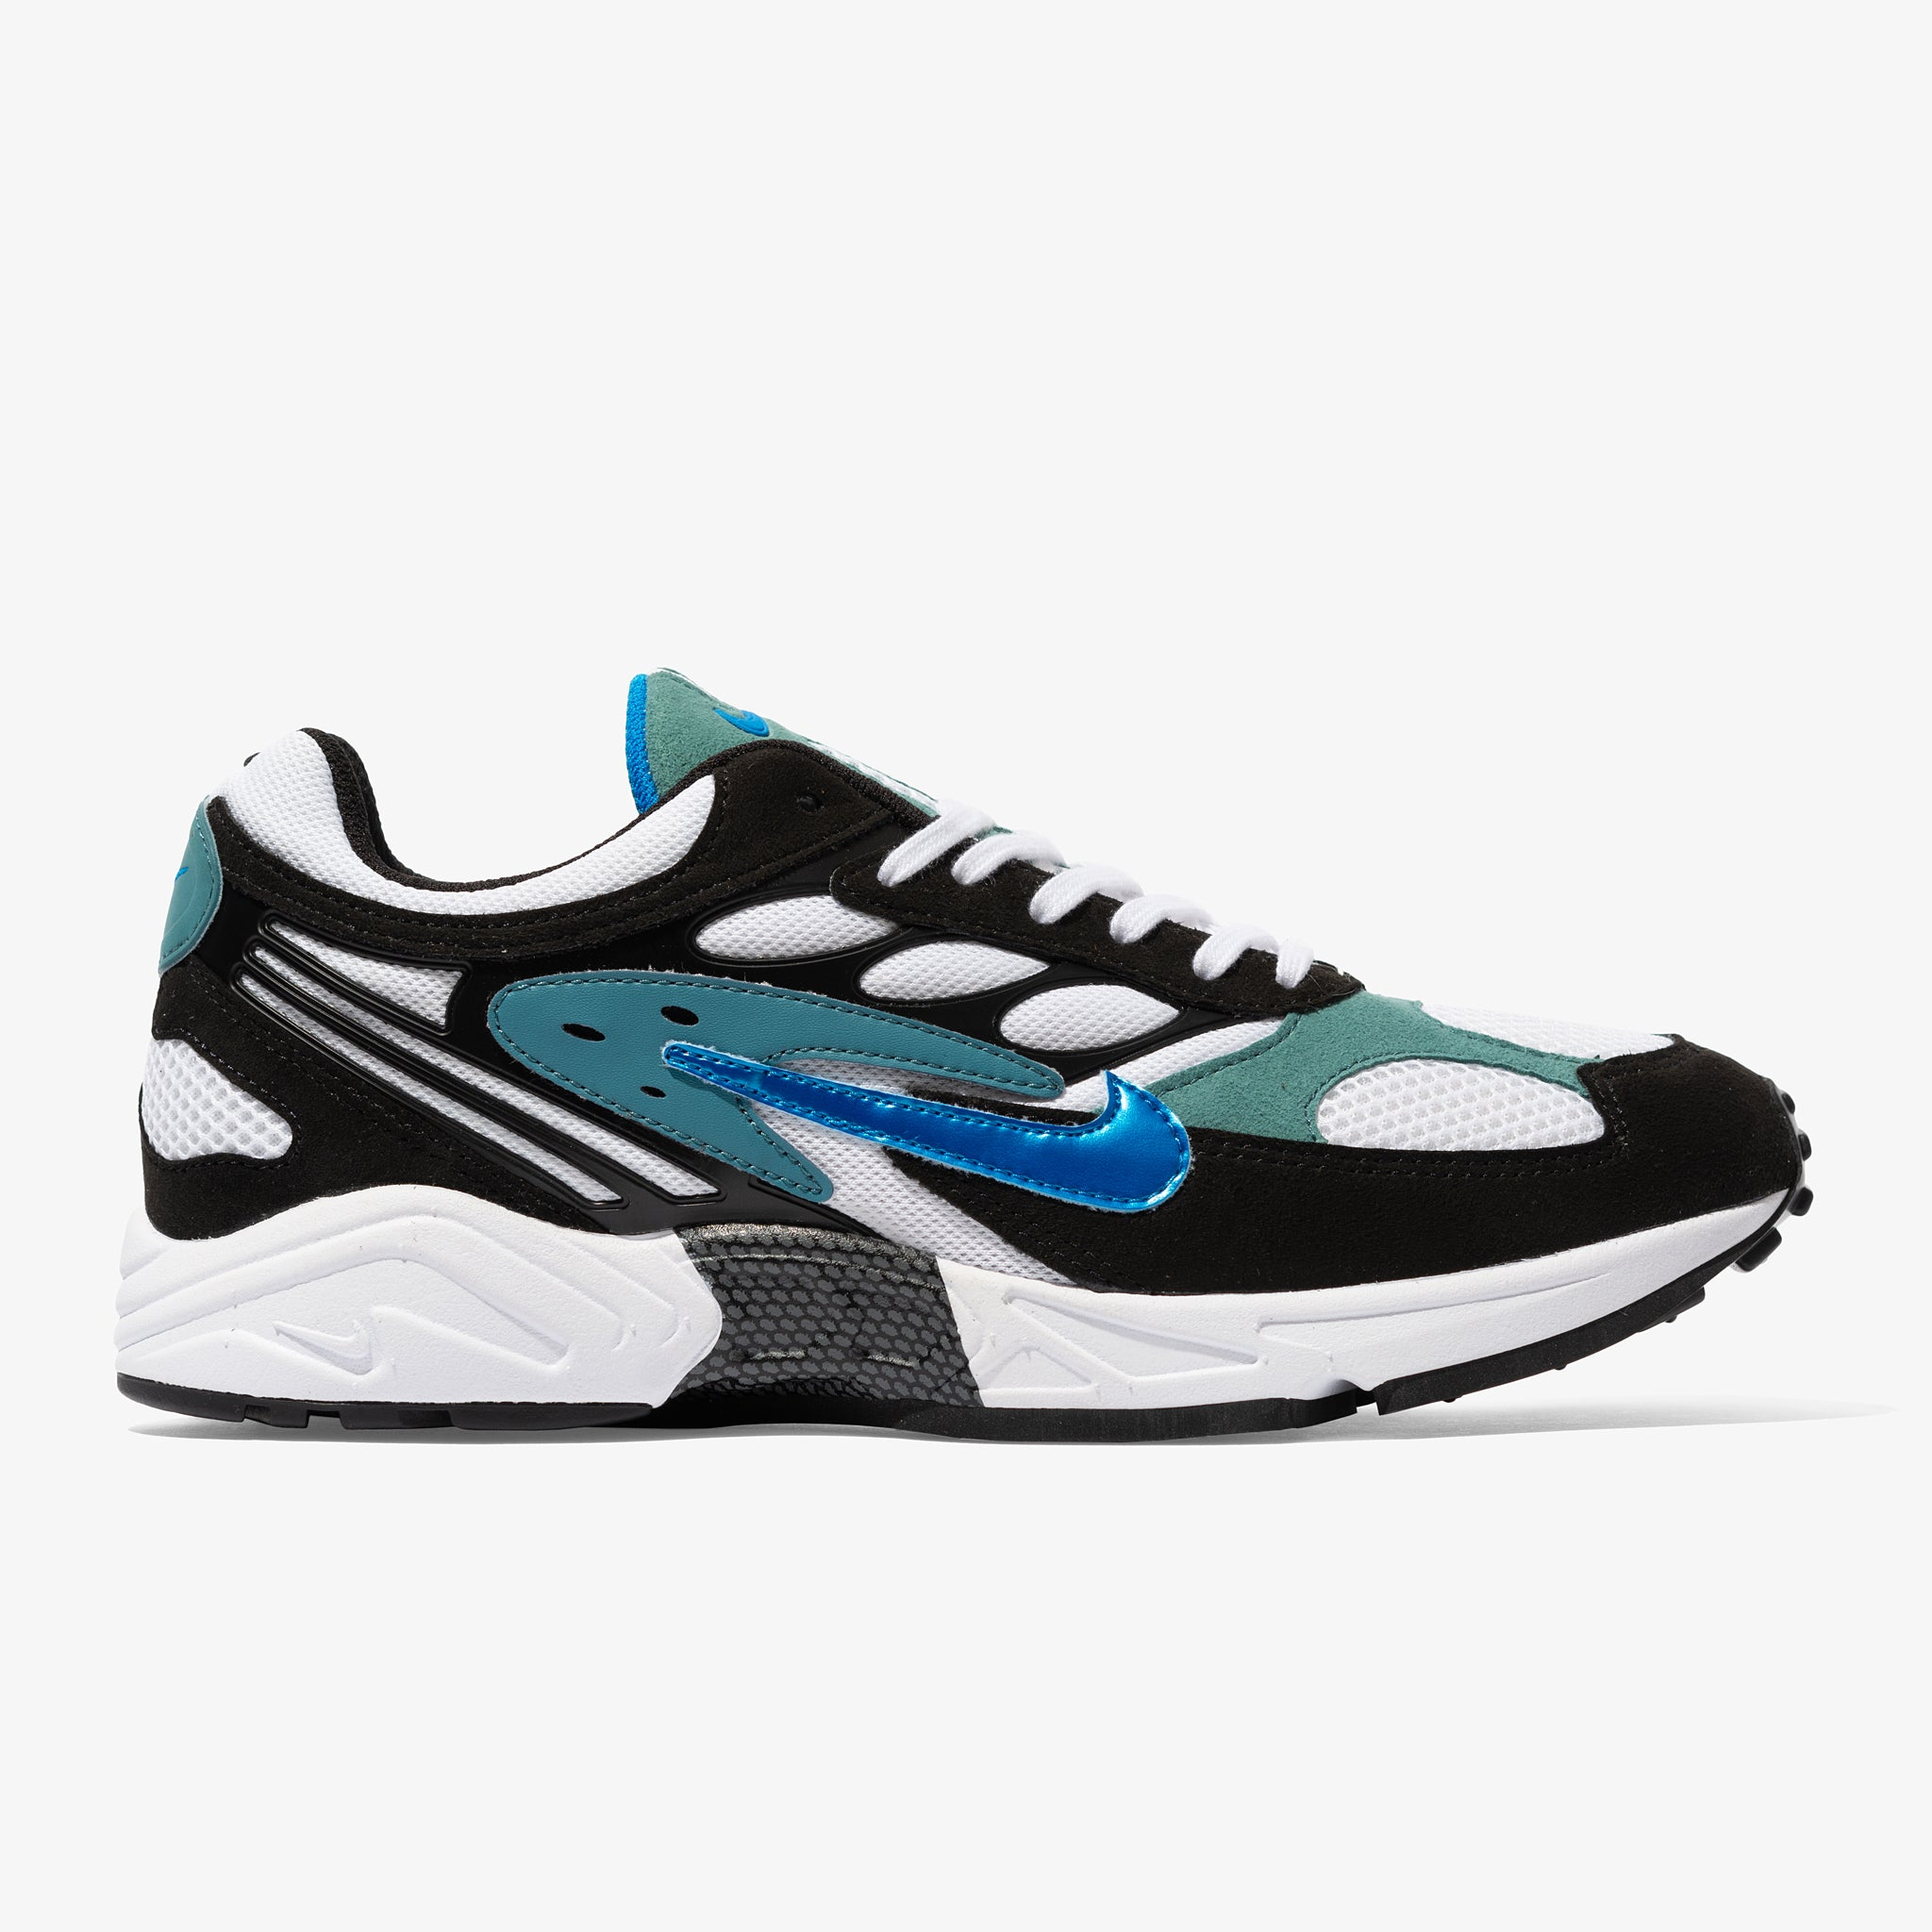 Ghost Racer (Black/Teal)